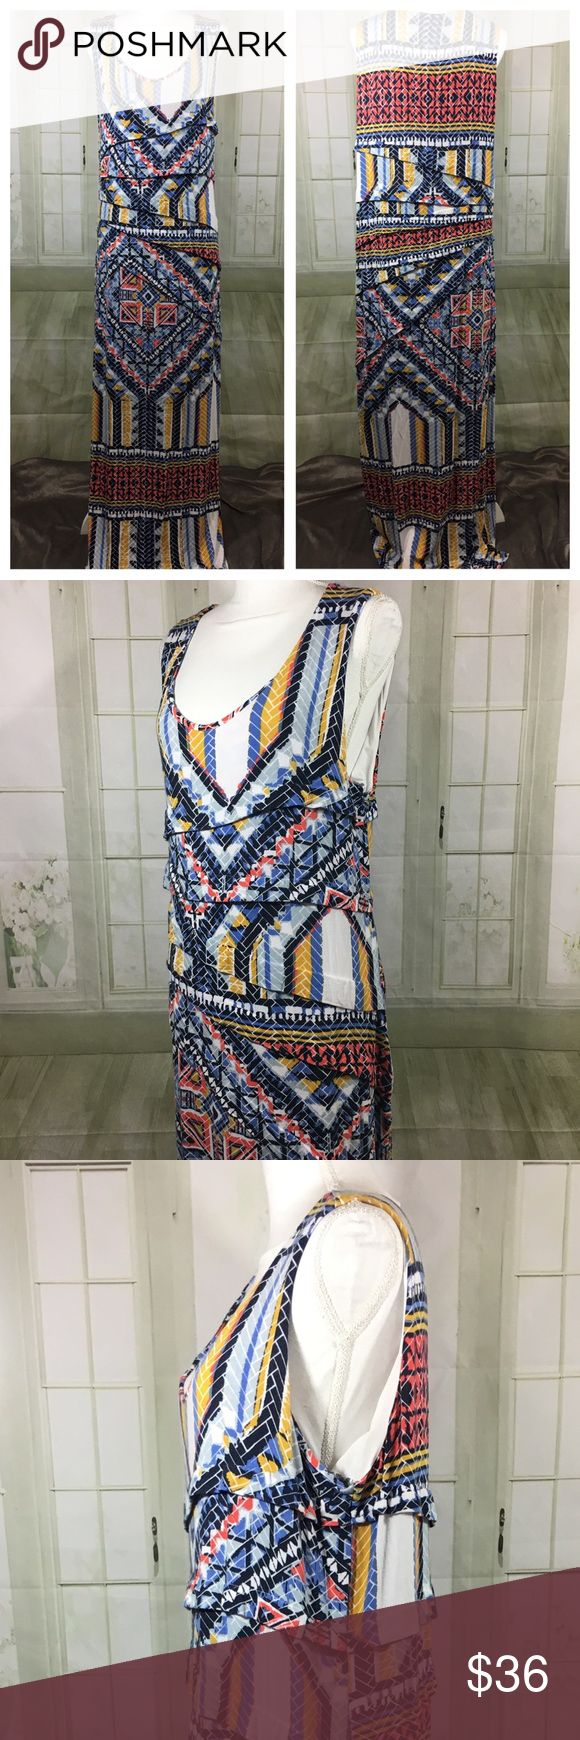 """LYSSE Aztec Print Maxi Plus Size Dress 2X Pullover, stretch maxi dress. Interior lining, heavyweight dress with long 29"""" side slit.  Approx. Measurements laying flat: Underarm to underarm: 23"""" Length: 58""""  Questions please ask!   Bin#2 Lysse Dresses Maxi"""